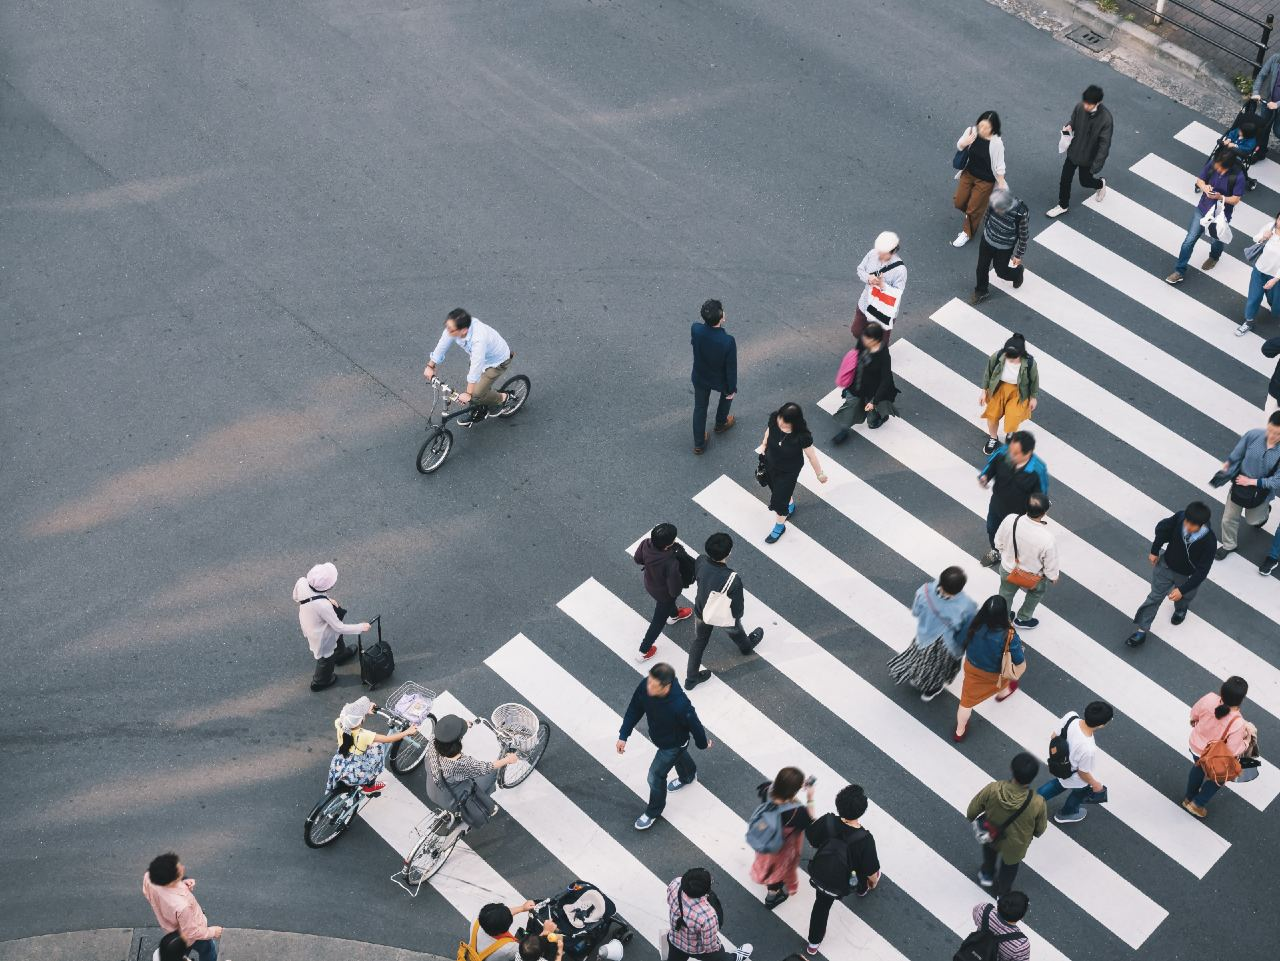 Japanese people crossing the road representing different demographics using social media